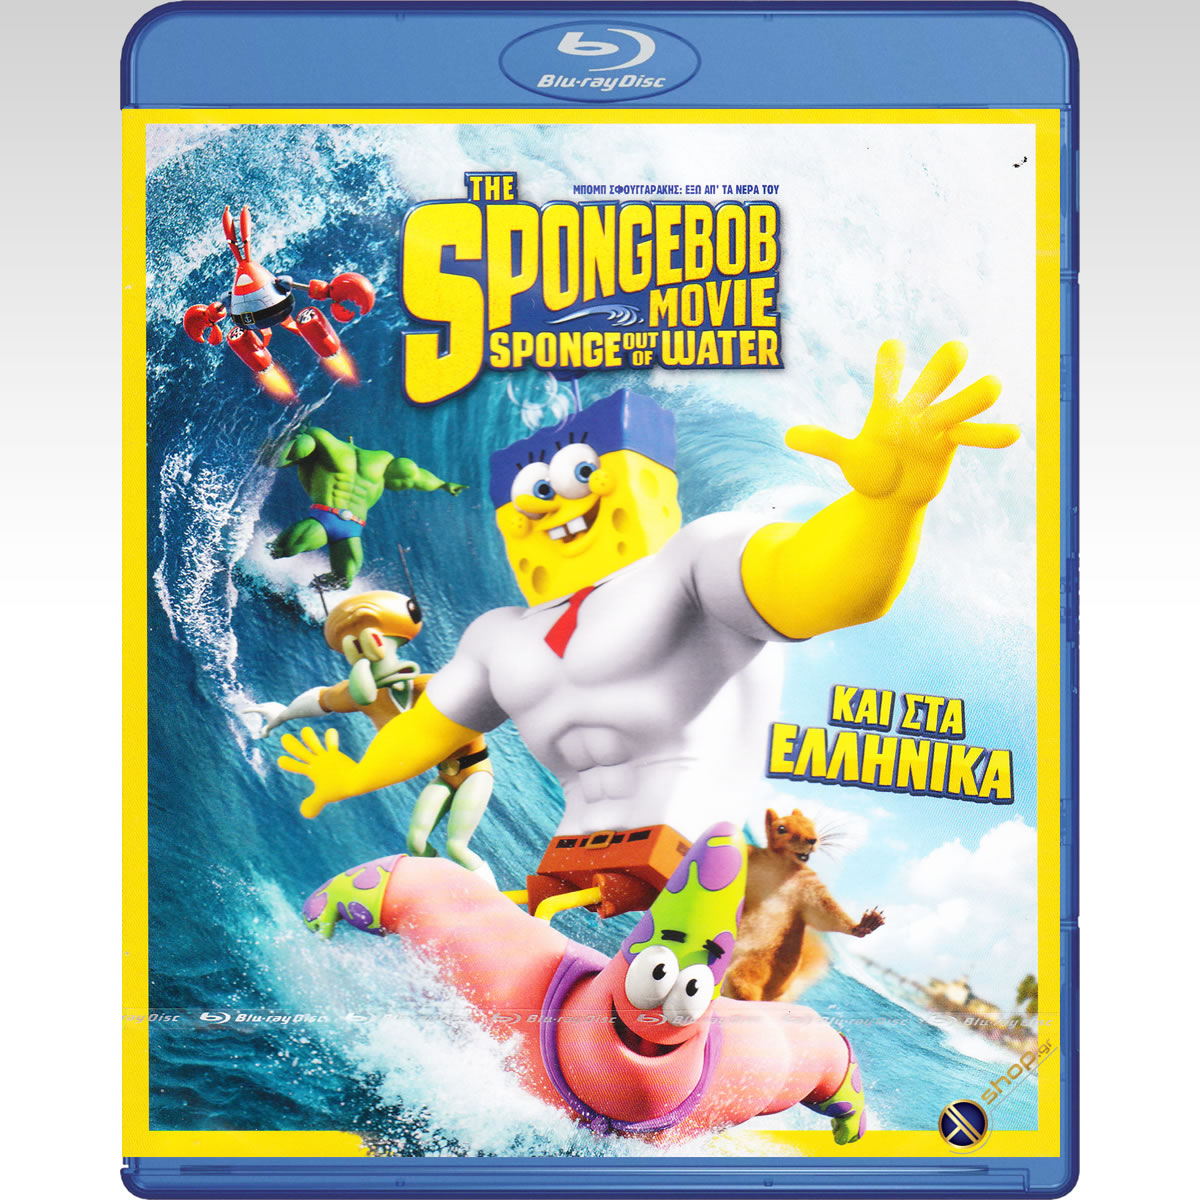 THE SPONGEBOB MOVIE: SPONGE OUT OF WATER - ����� ������������: ��� ��'�� ���� ��� (BLU-RAY) & ��� ��������